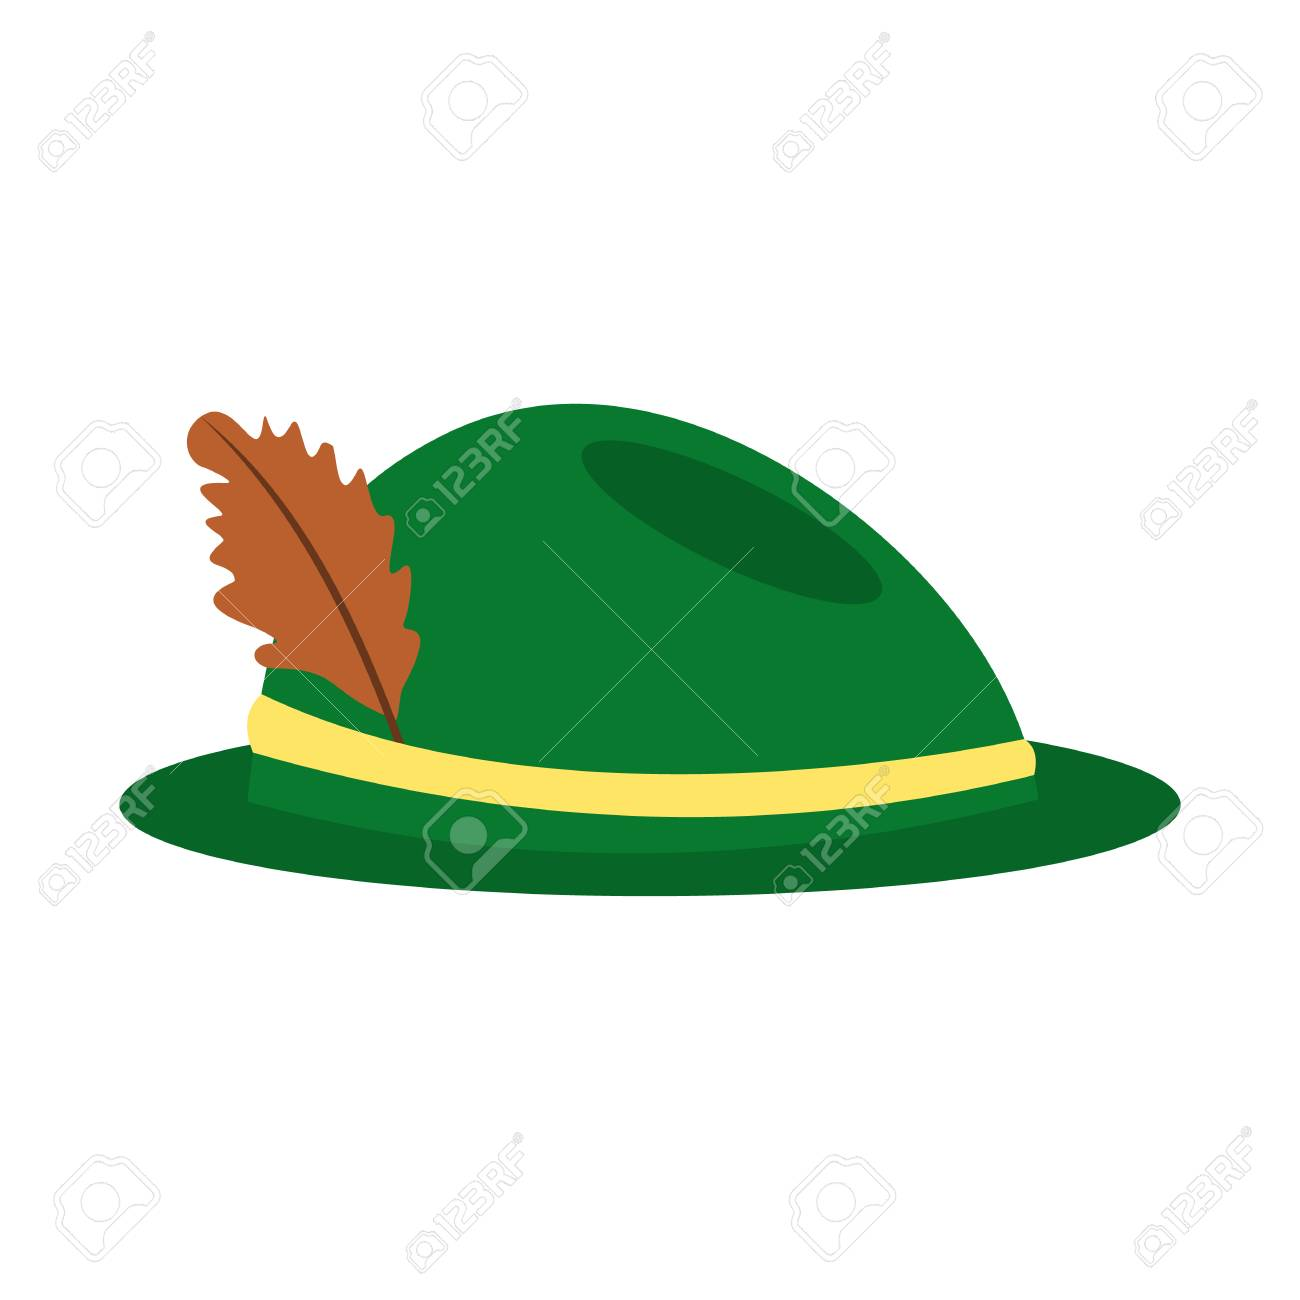 eb20c829456 Green hat with a feather icon in flat style isolated on white background  Stock Vector -